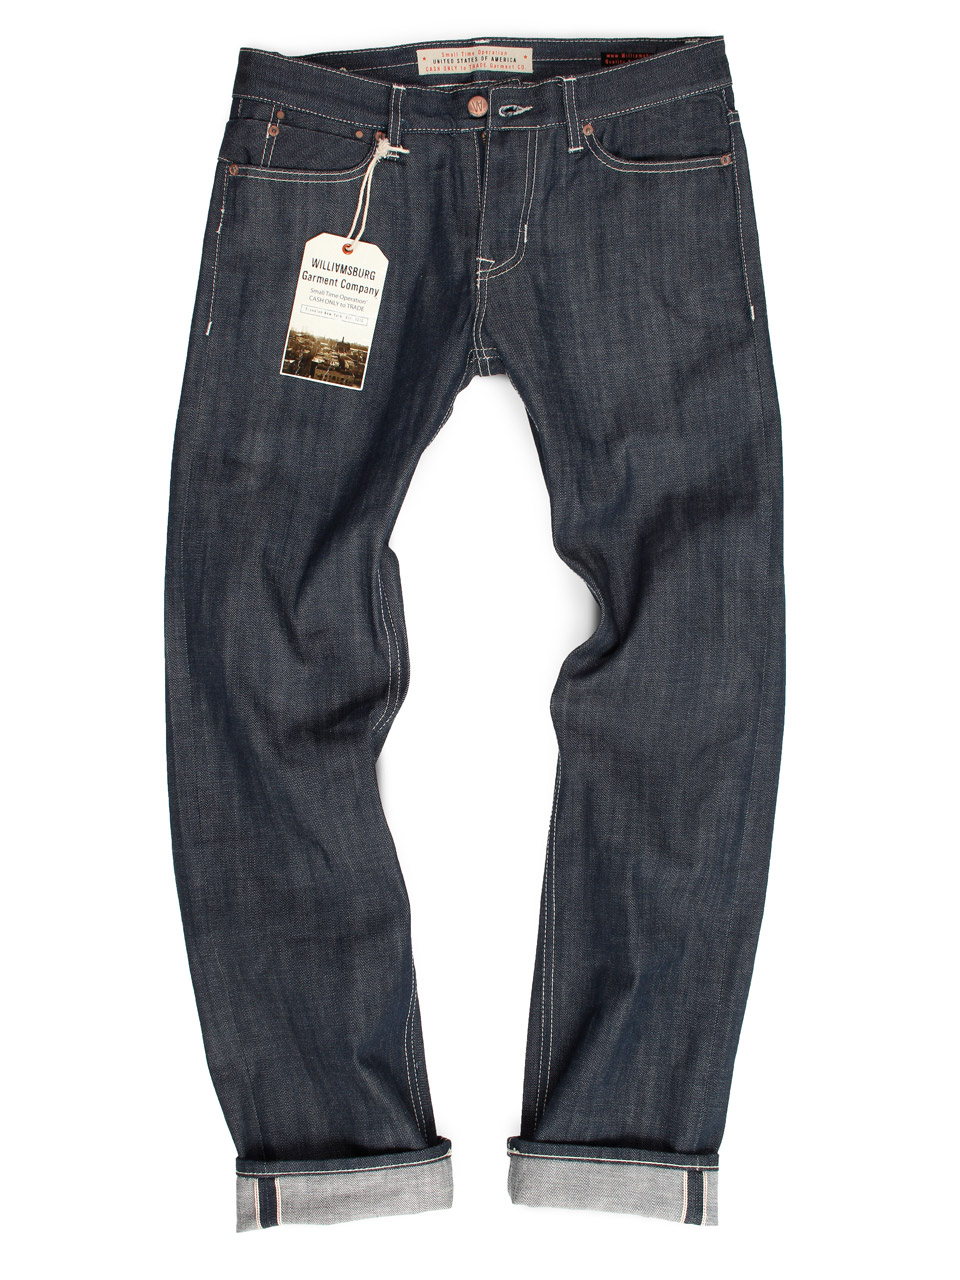 mens raw denim selvedge jeans basic fit